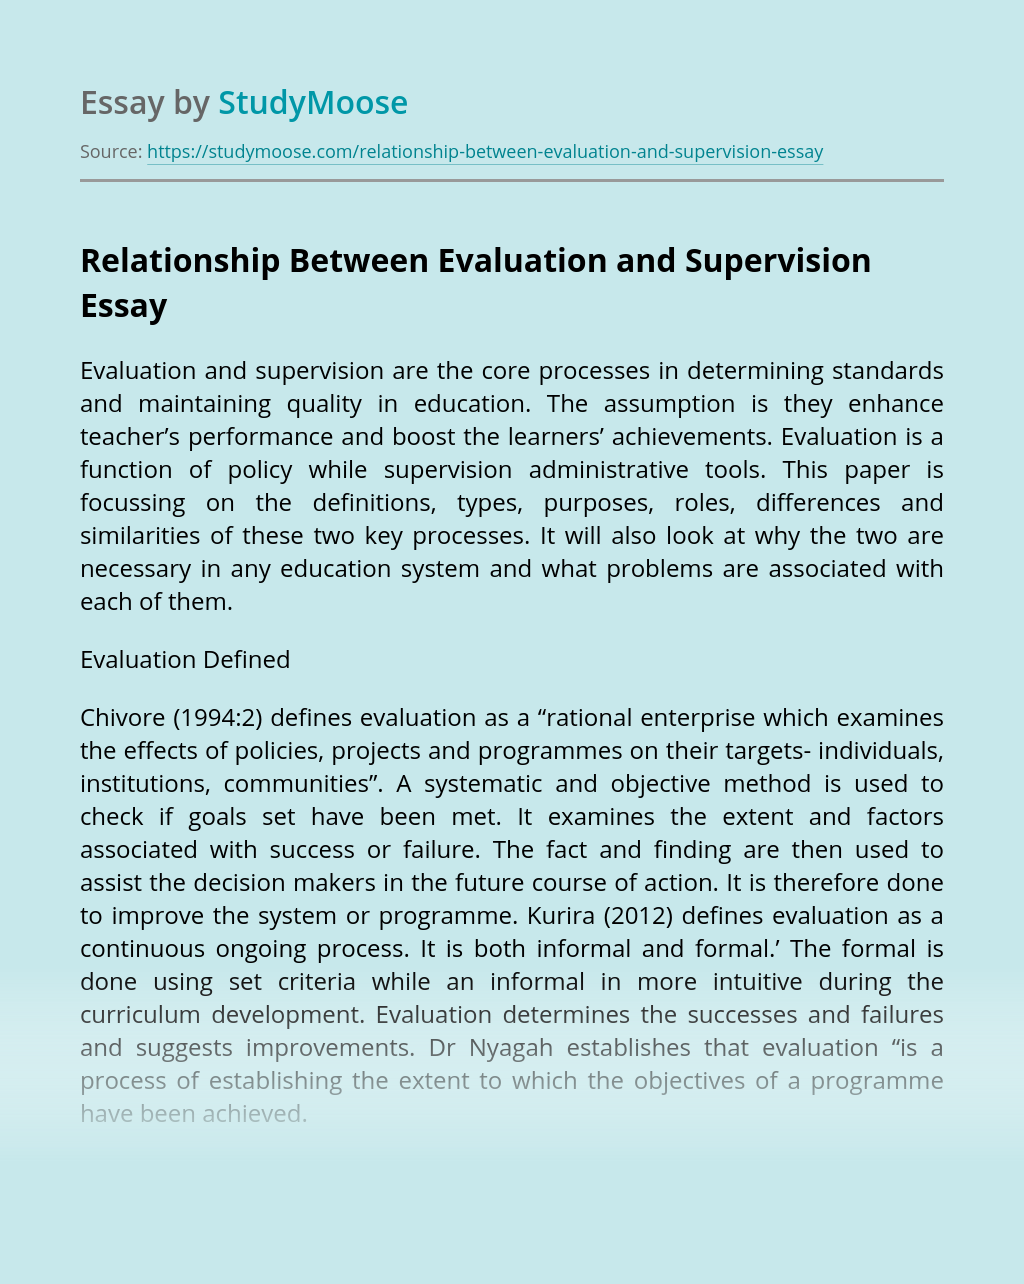 Relationship Between Evaluation and Supervision